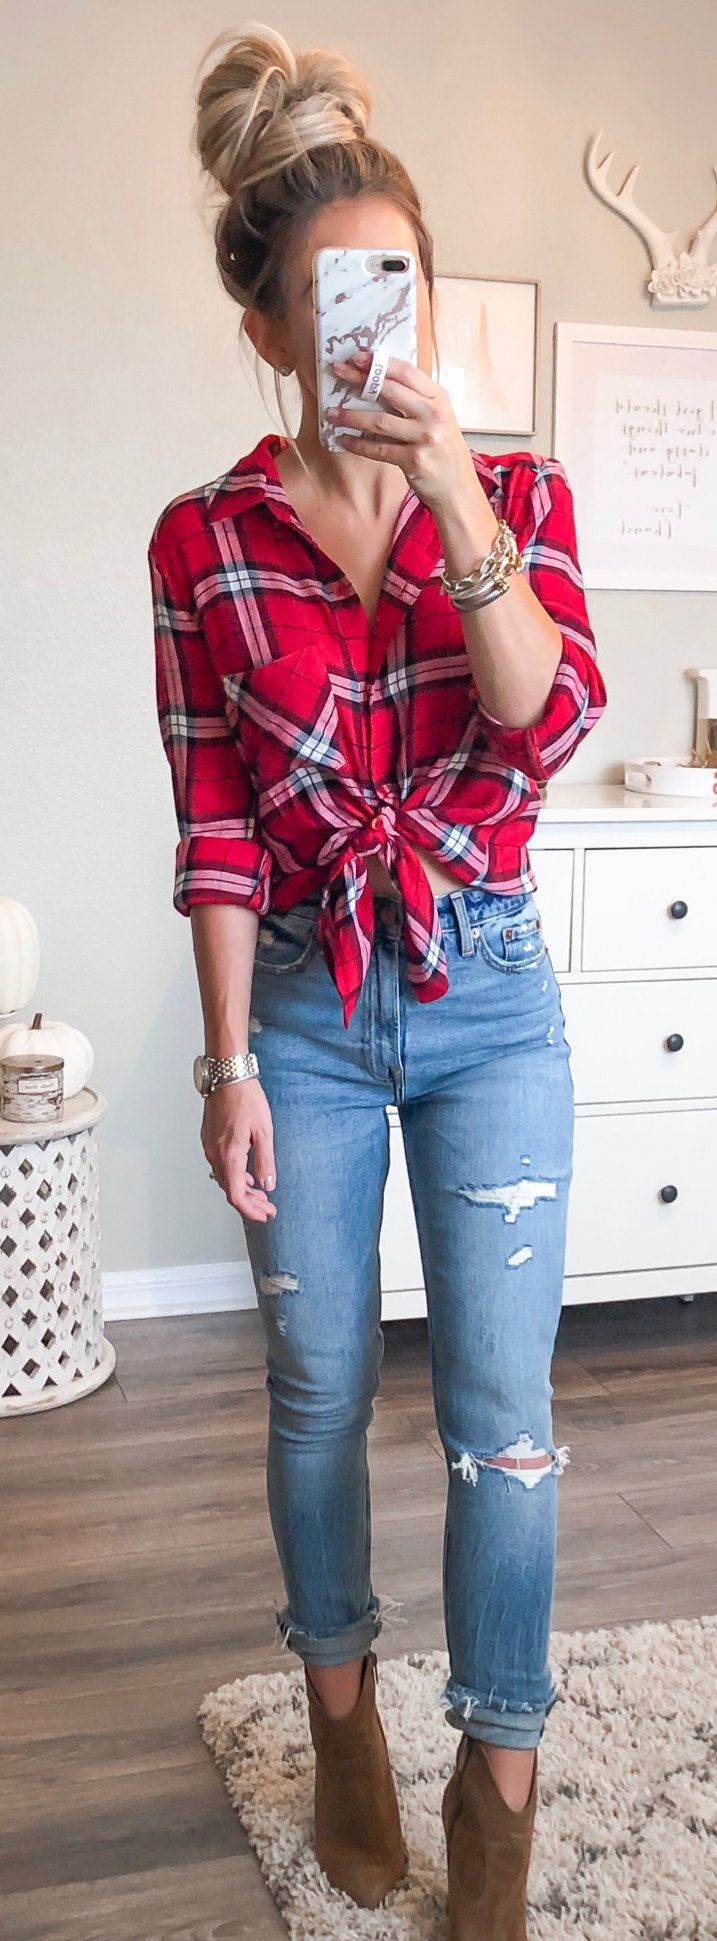 10+ Insane Fall Outfits You Should Already Own